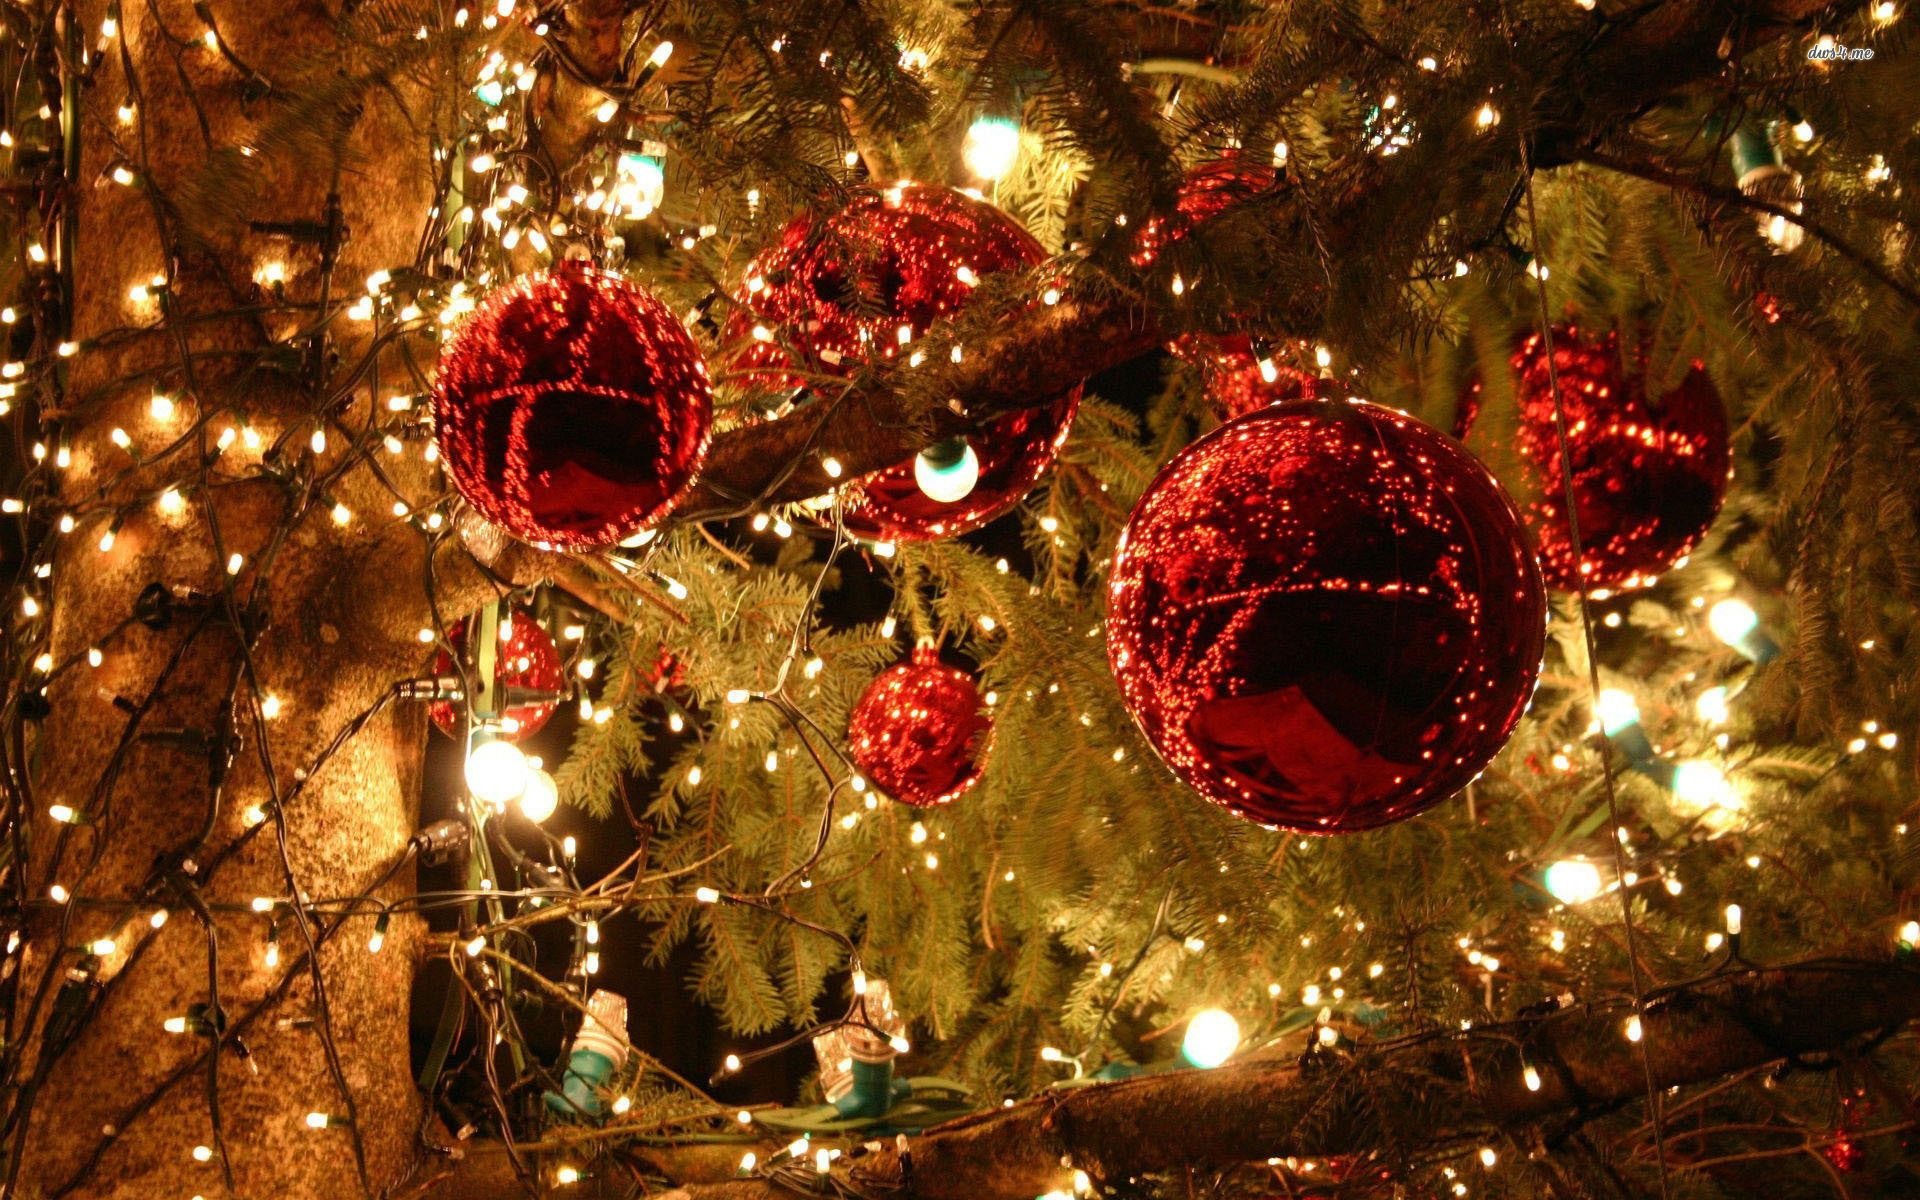 Christmas Wallpaper For Desktop.Christmas Pc Wallpapers Top Free Christmas Pc Backgrounds